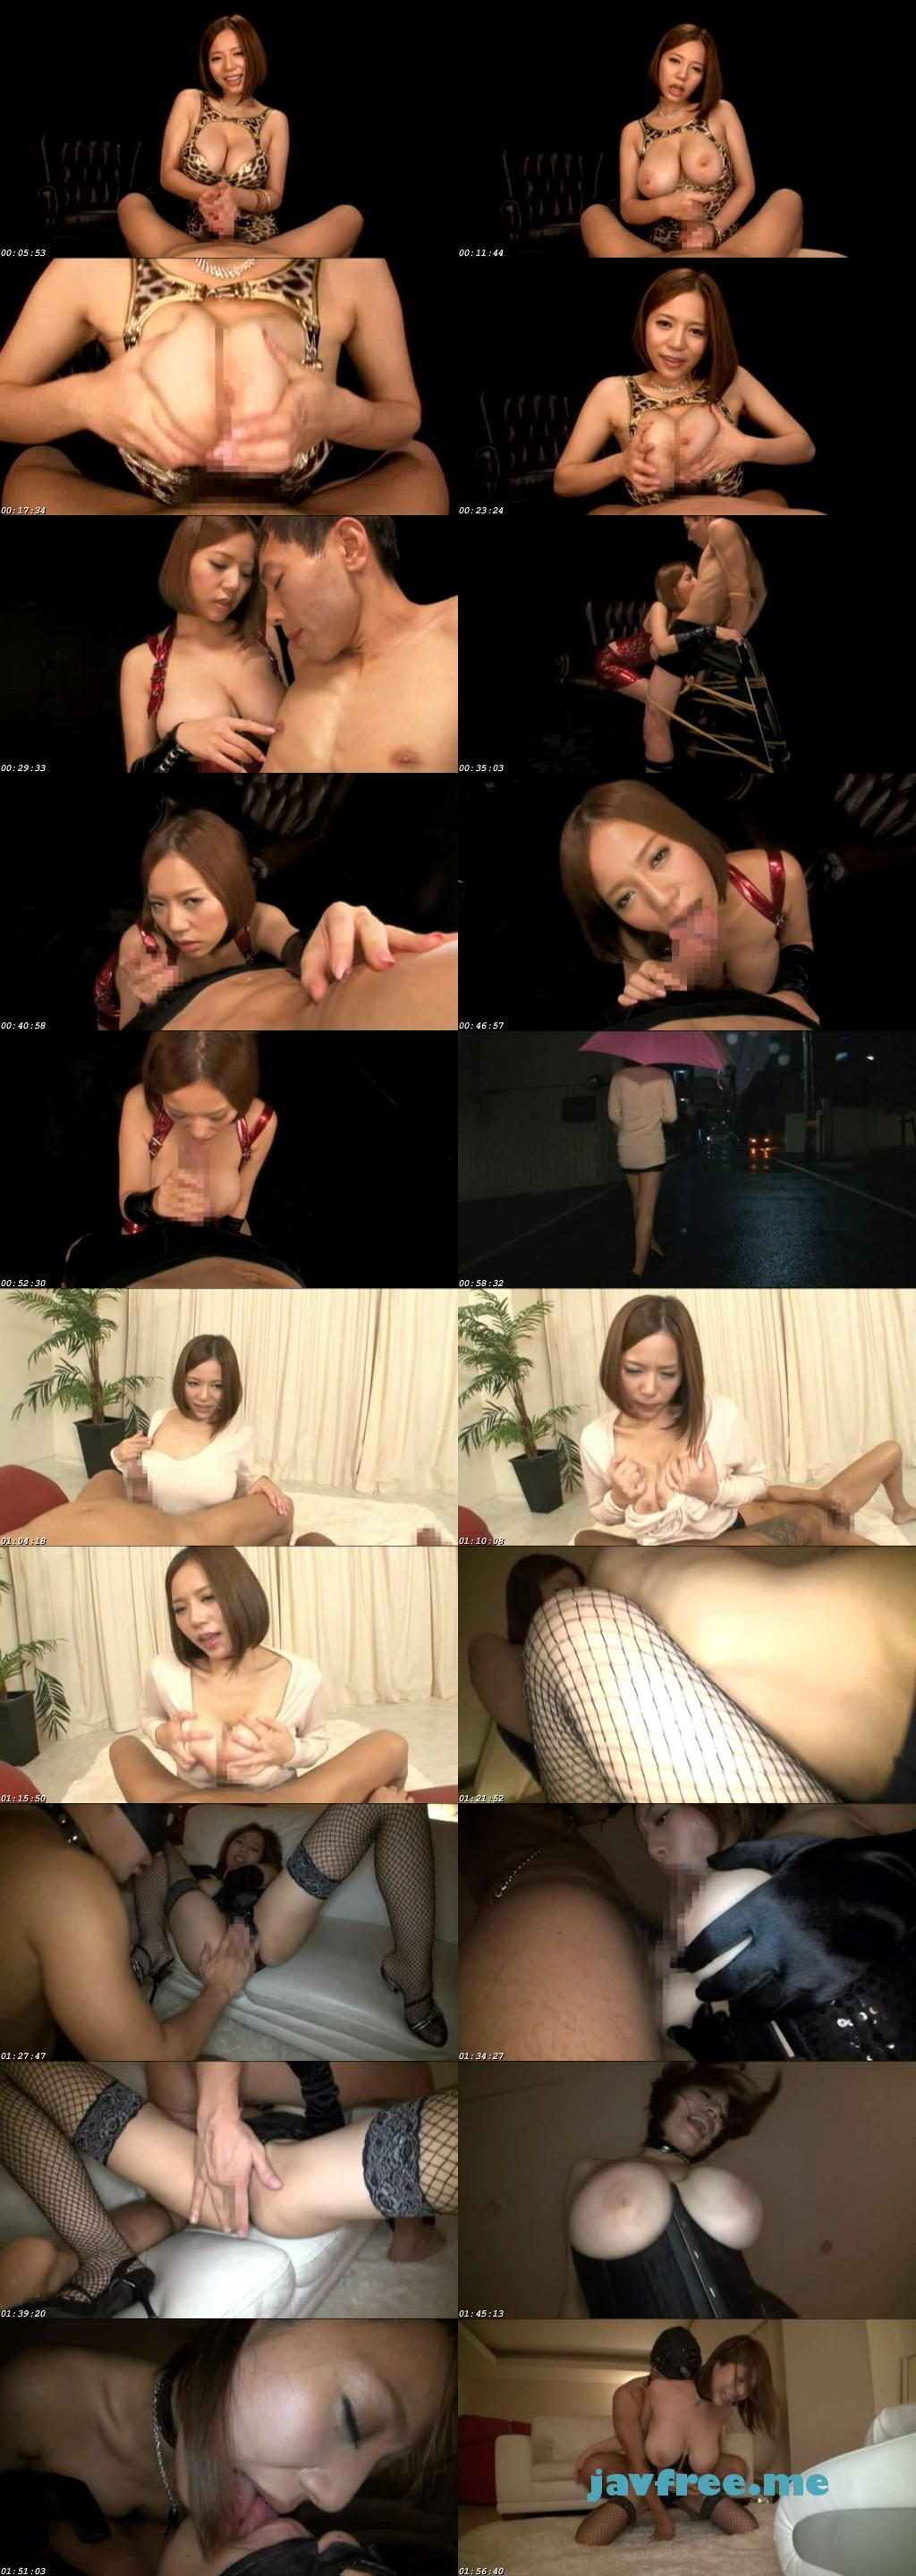 [REAL-448]  鬼パイズリ地獄 西條るり - image REAL448 on https://javfree.me